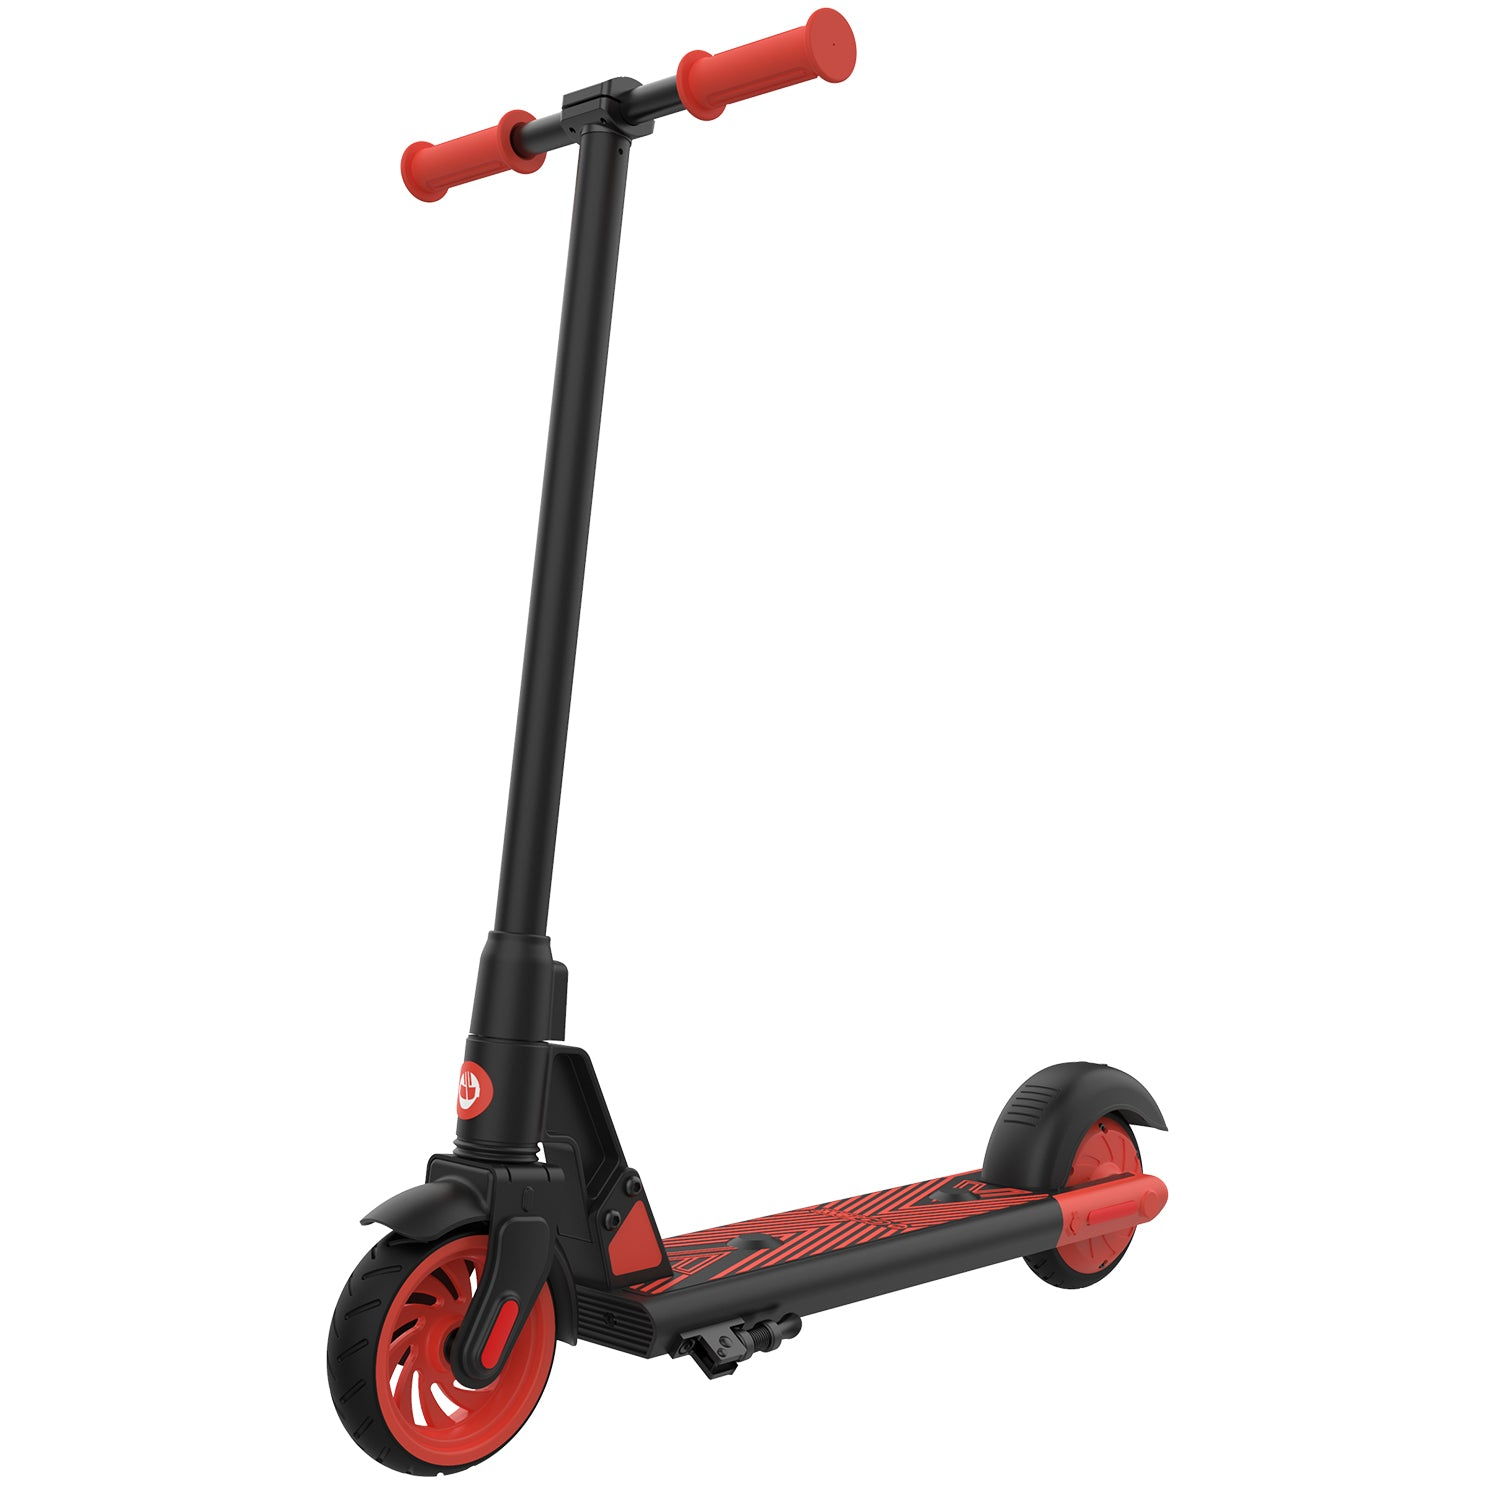 Red gks electric scooter for kids main image